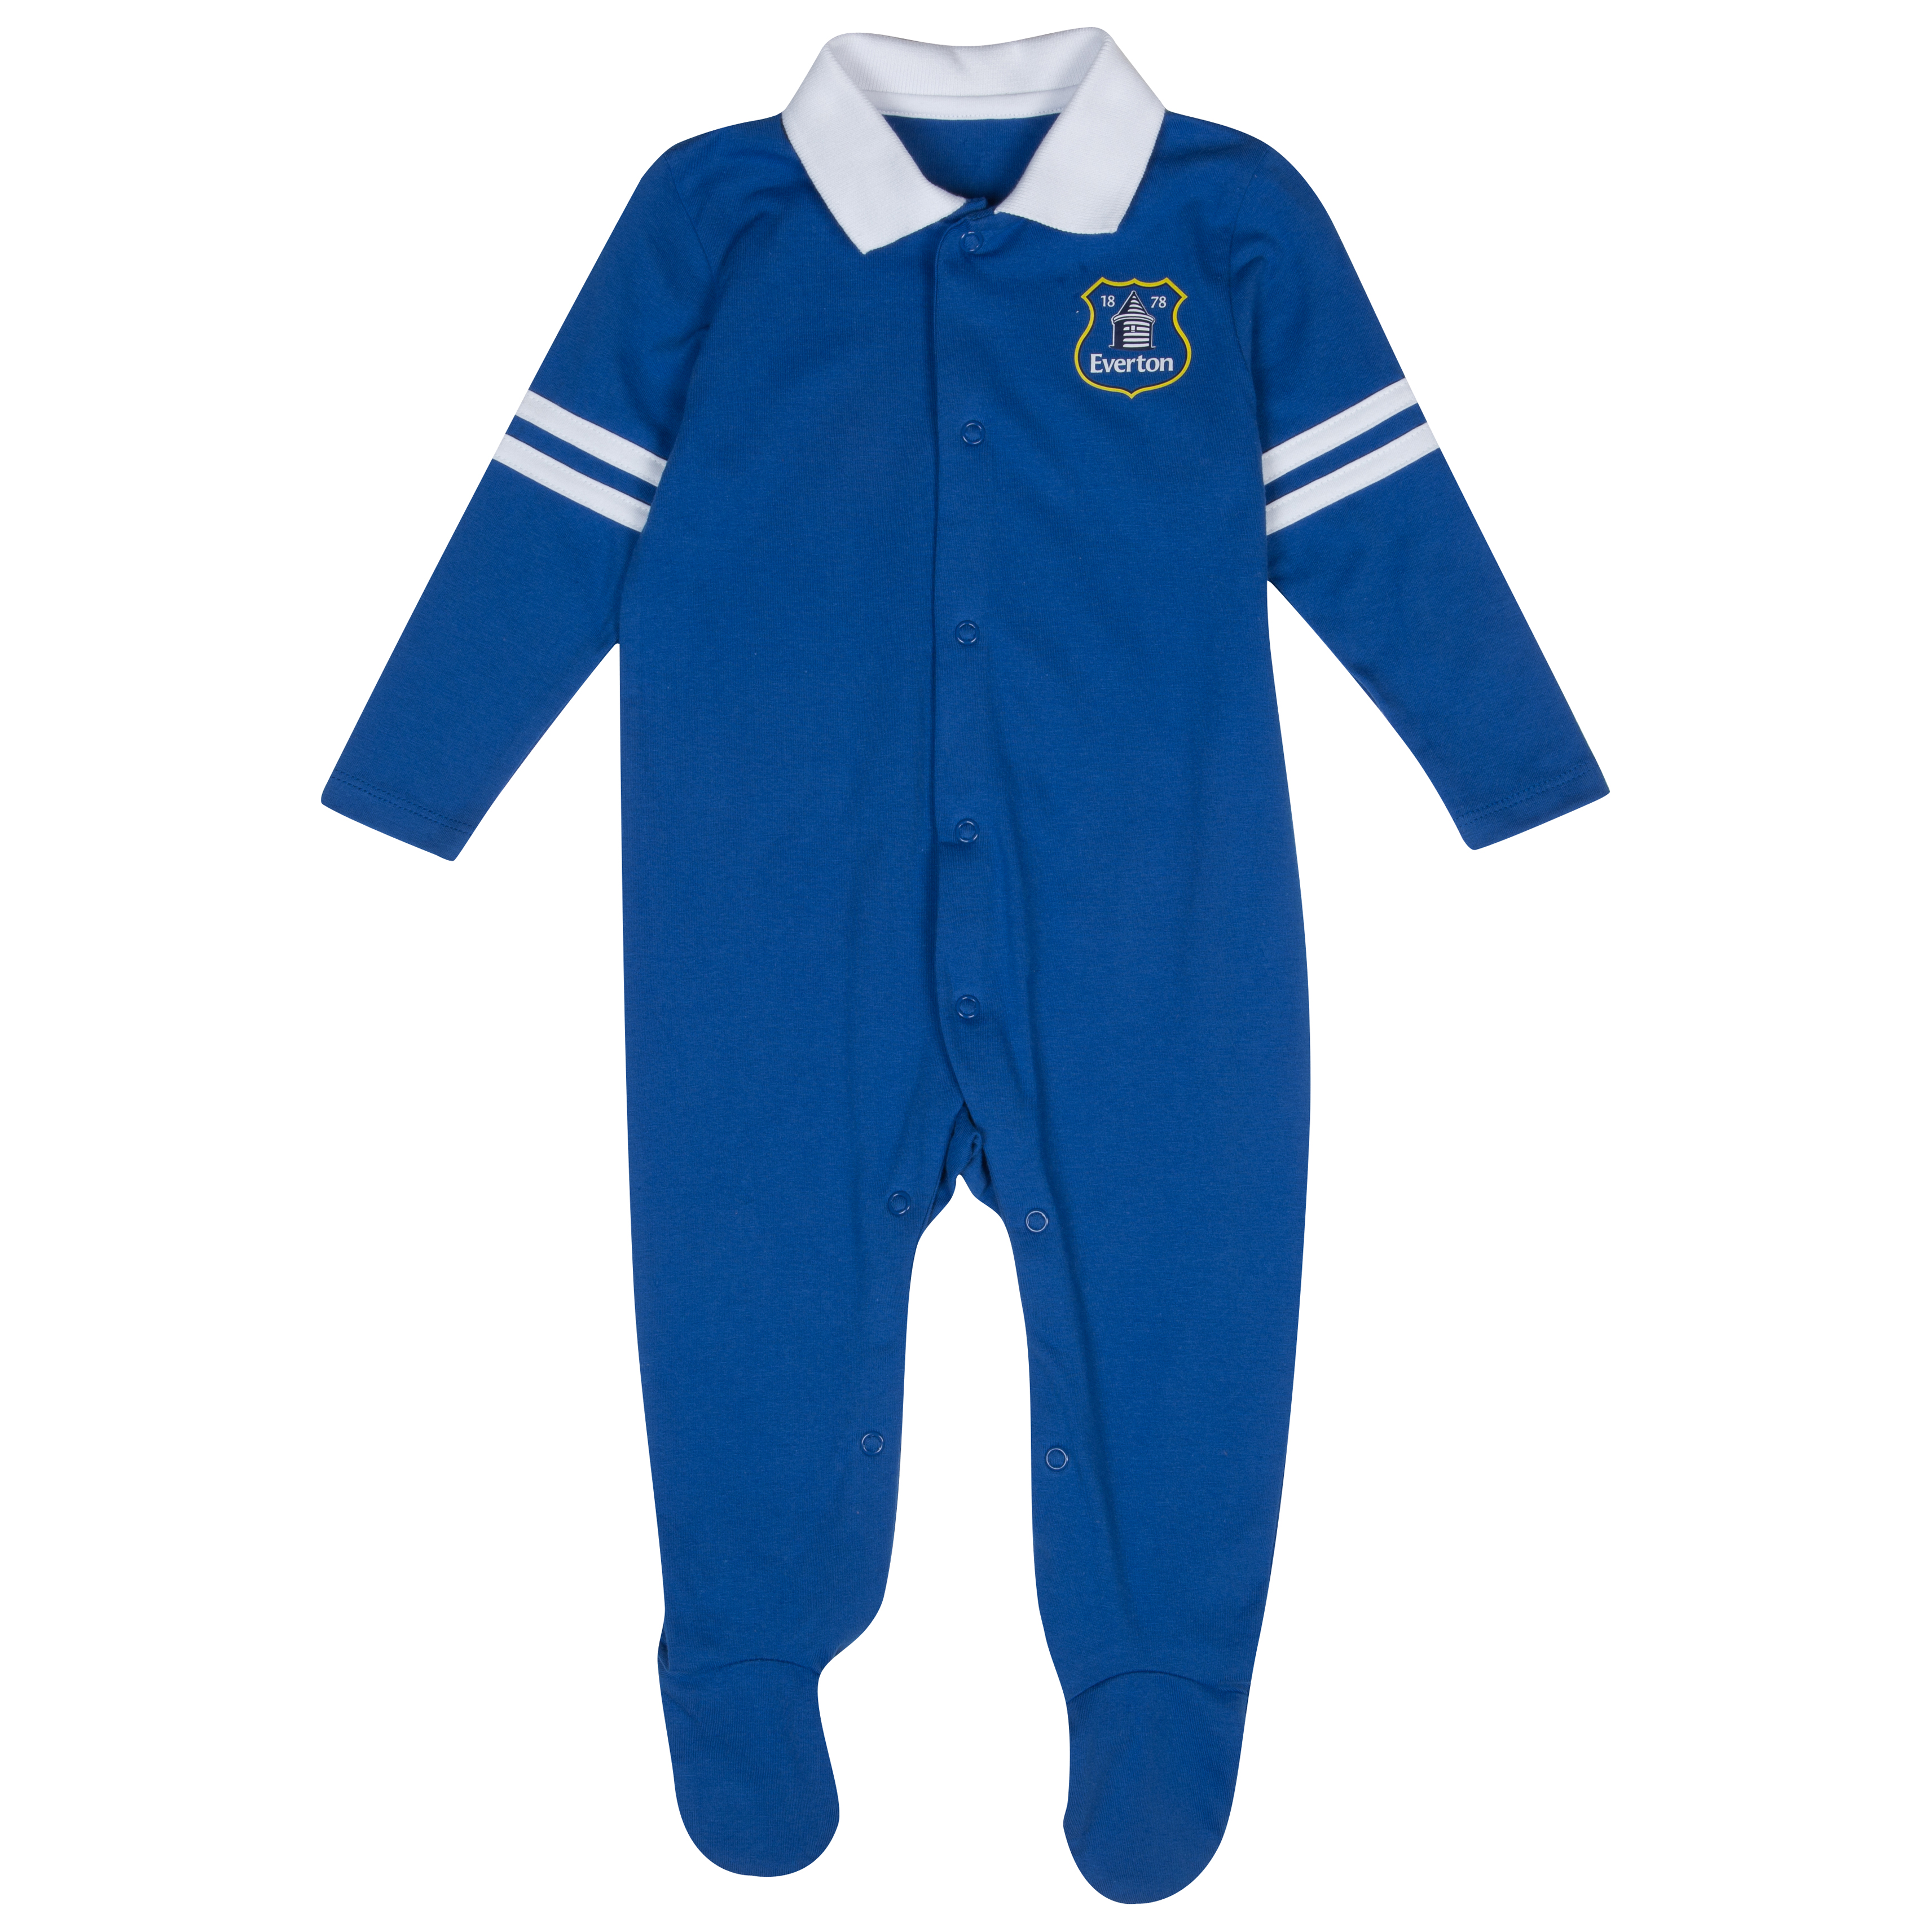 Everton 13/14 Kit Sleepsuit - Blue - Baby